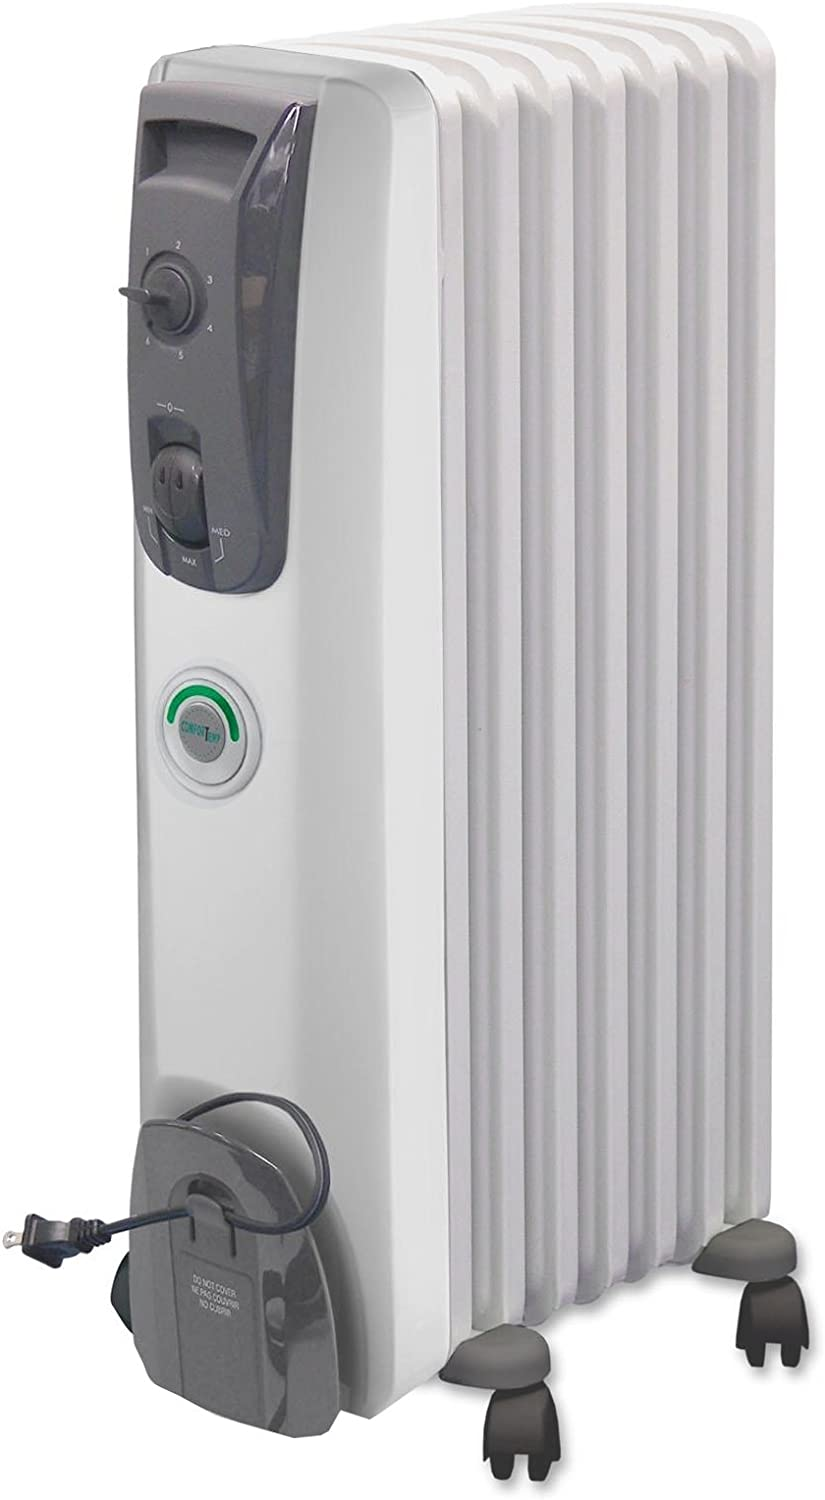 Top 6 Best Oil Filled Heater To Keep You Stay Warm (2019 Reviews) 4